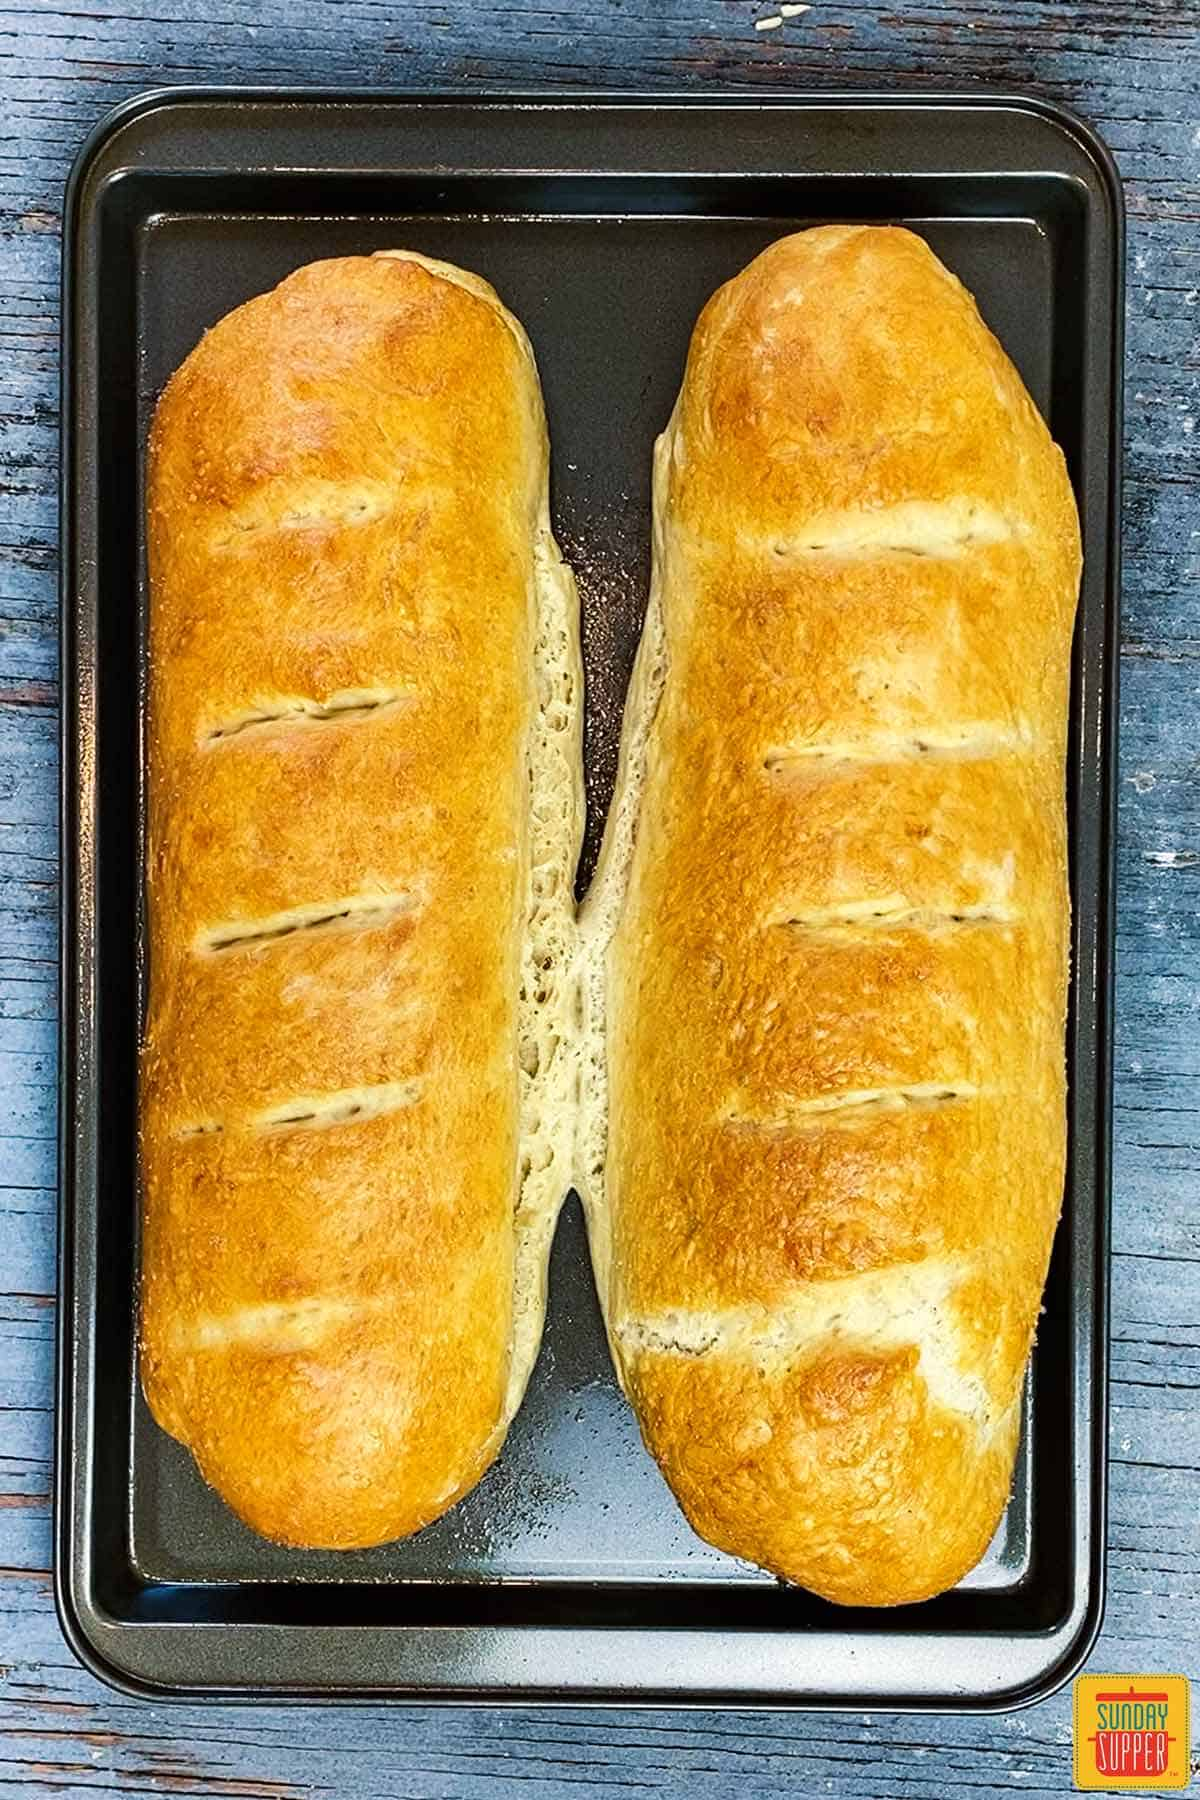 After baking homemade french bread recipe - two loaves on a baking sheet